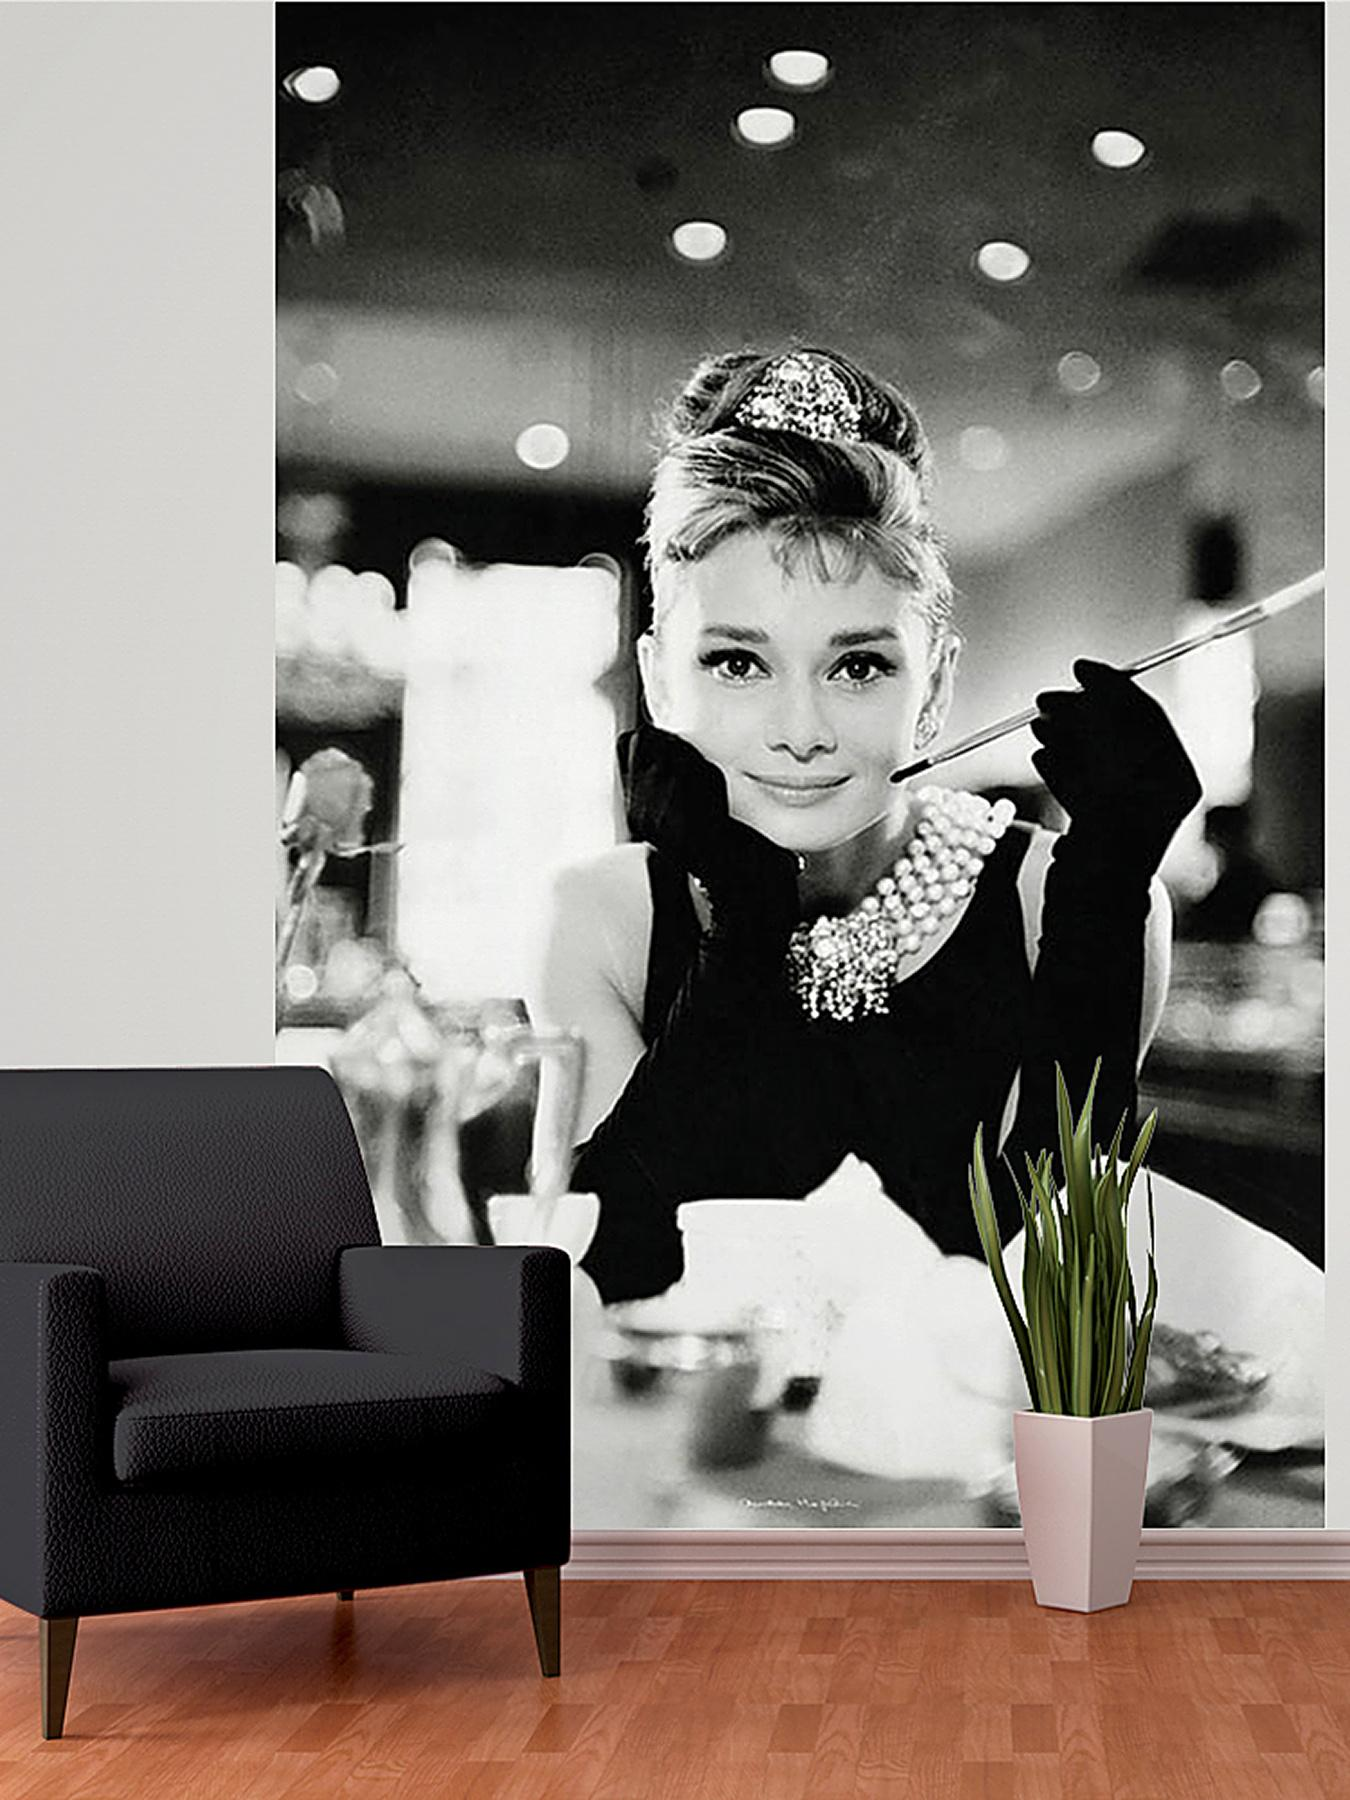 1Wall Audrey Hepburn Breakfast at Tiffany's Wall Mural